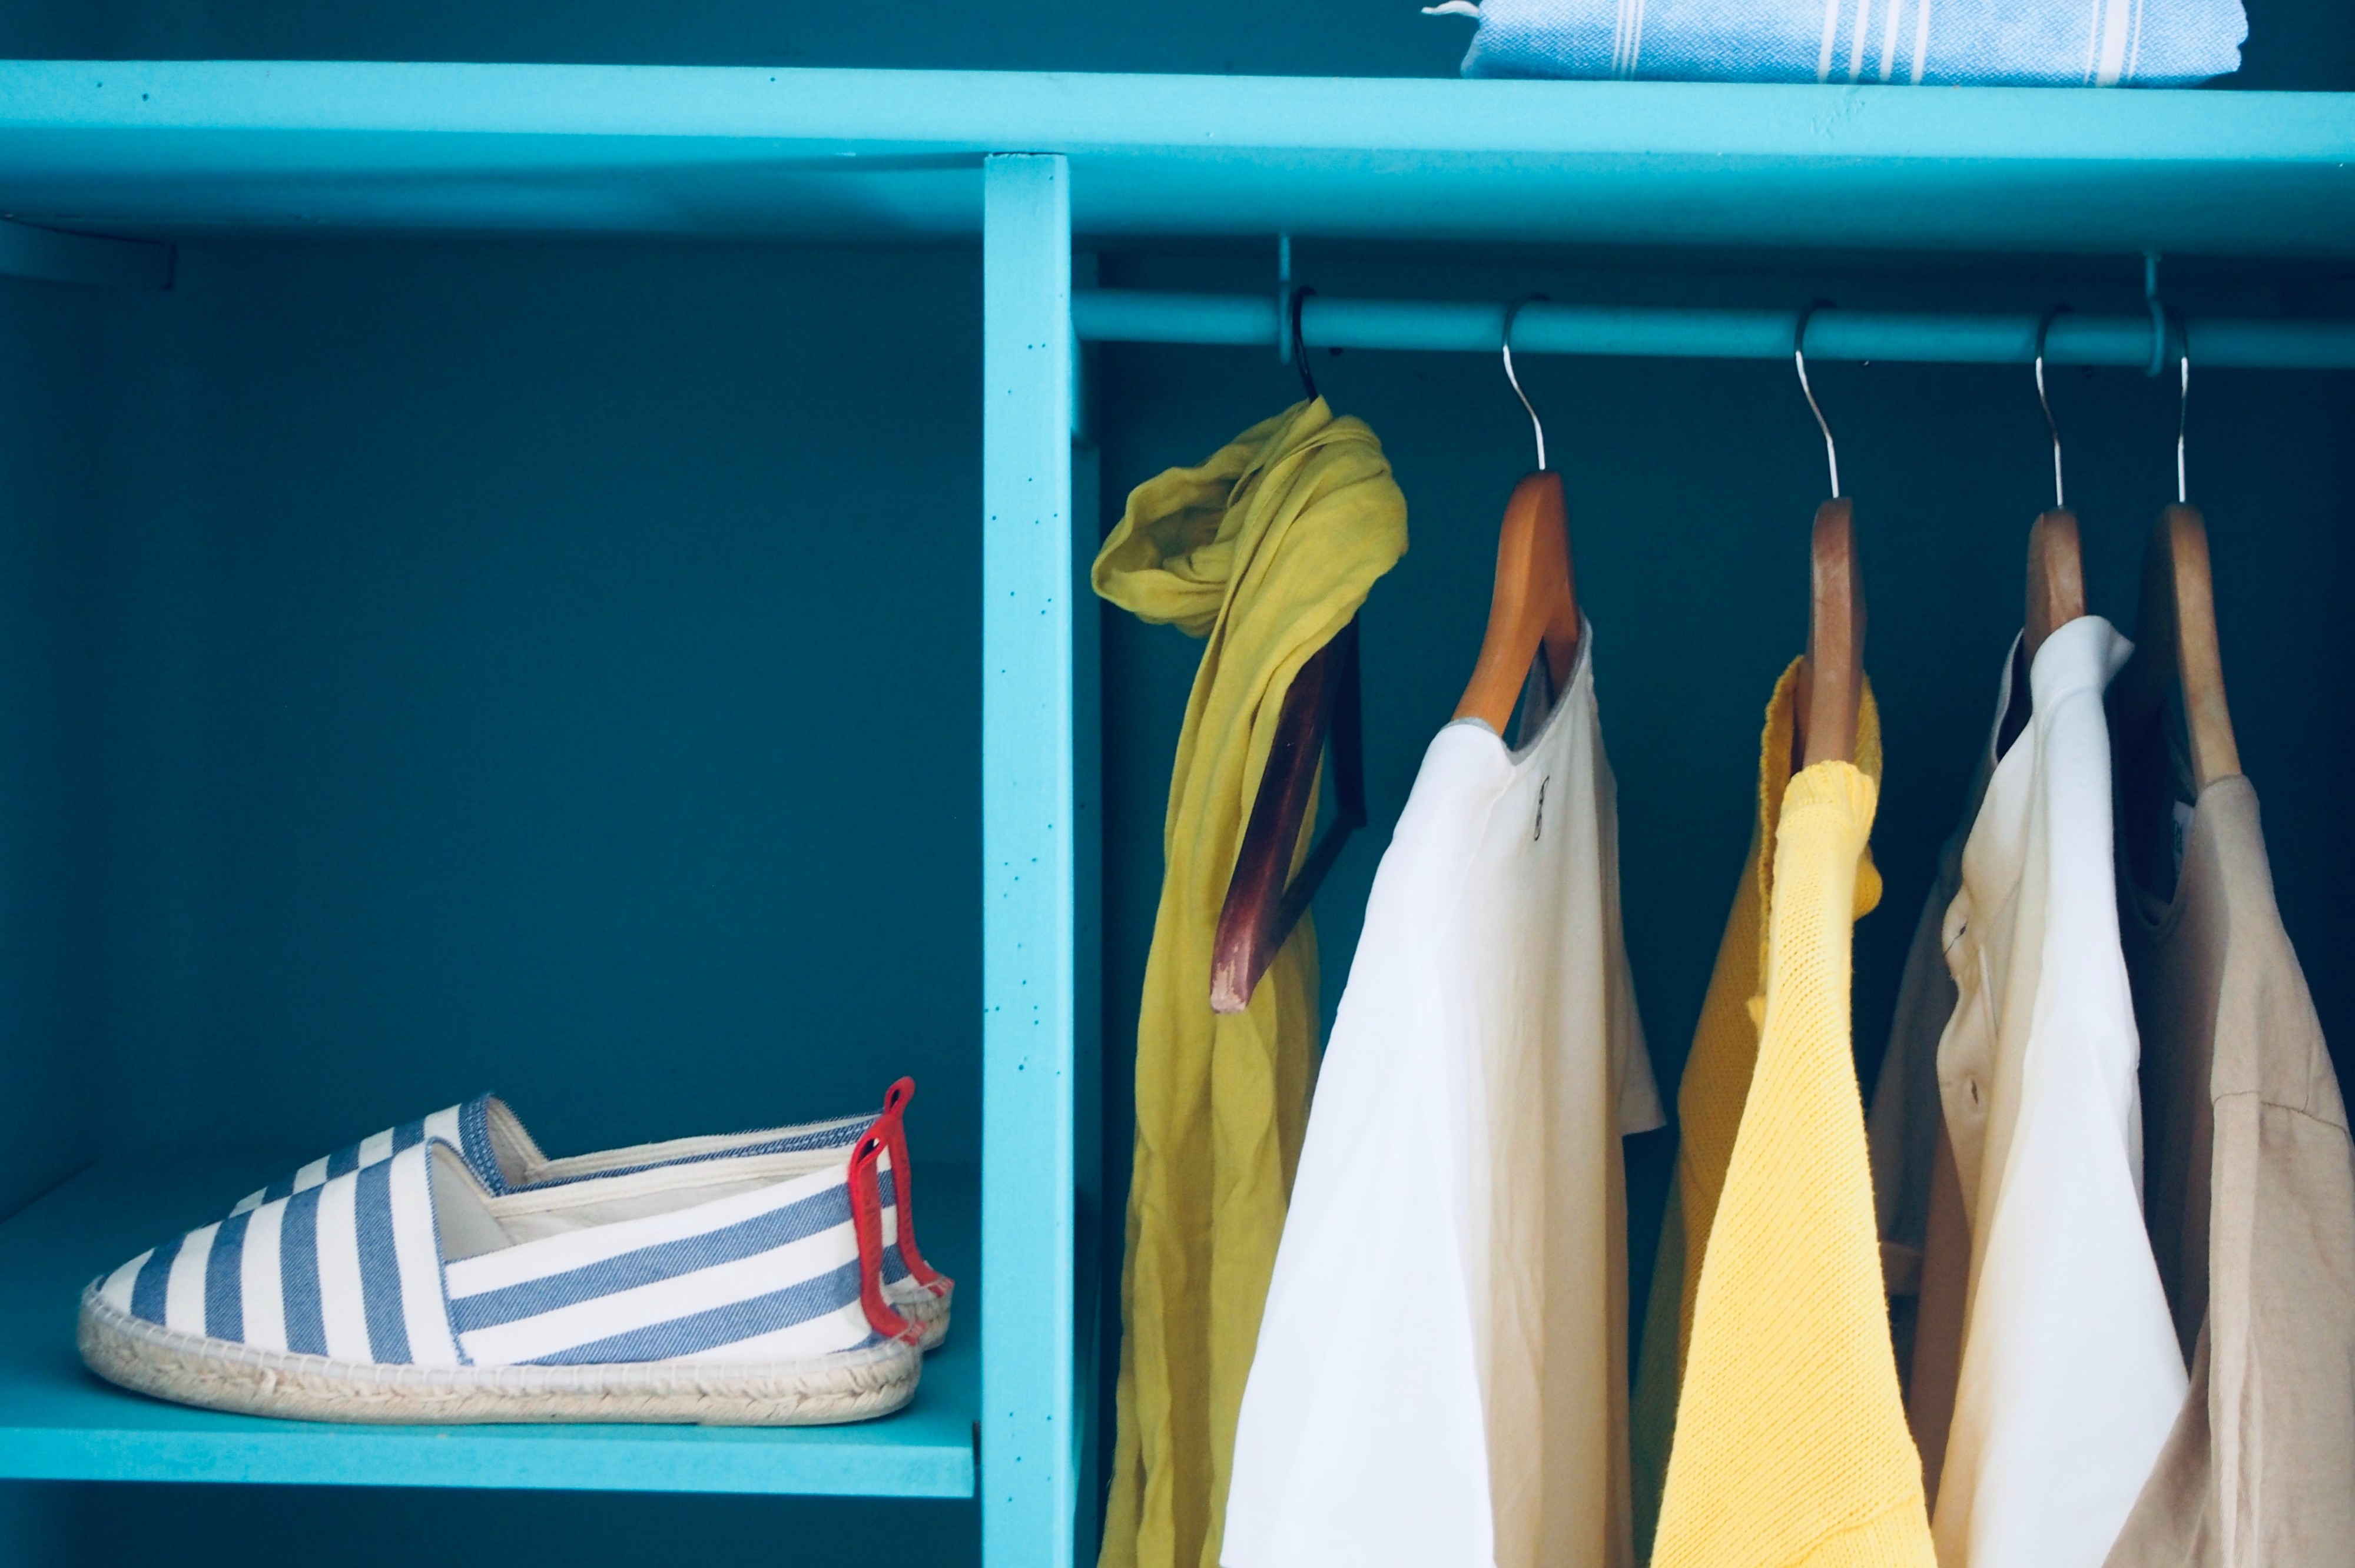 Clothing hanging neatly in a closet.